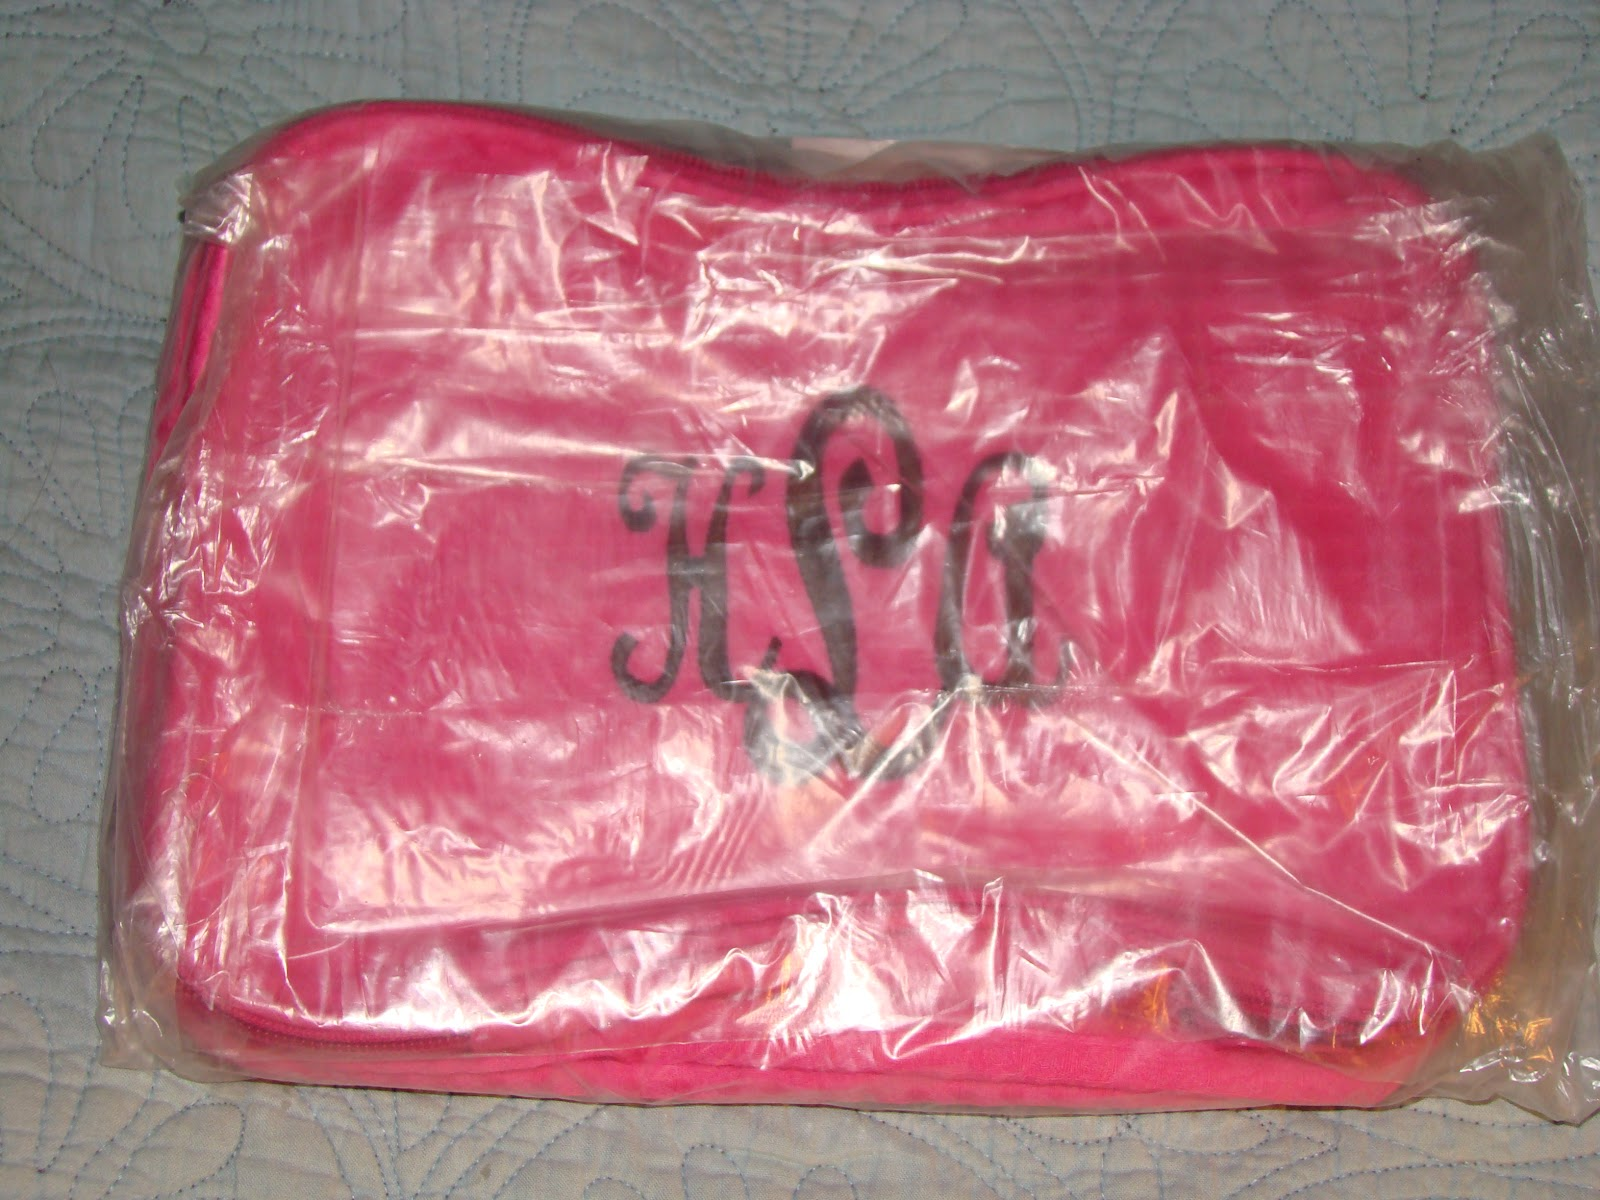 hope u0026 39 s cafe  monogrammed gifts from marley lilly